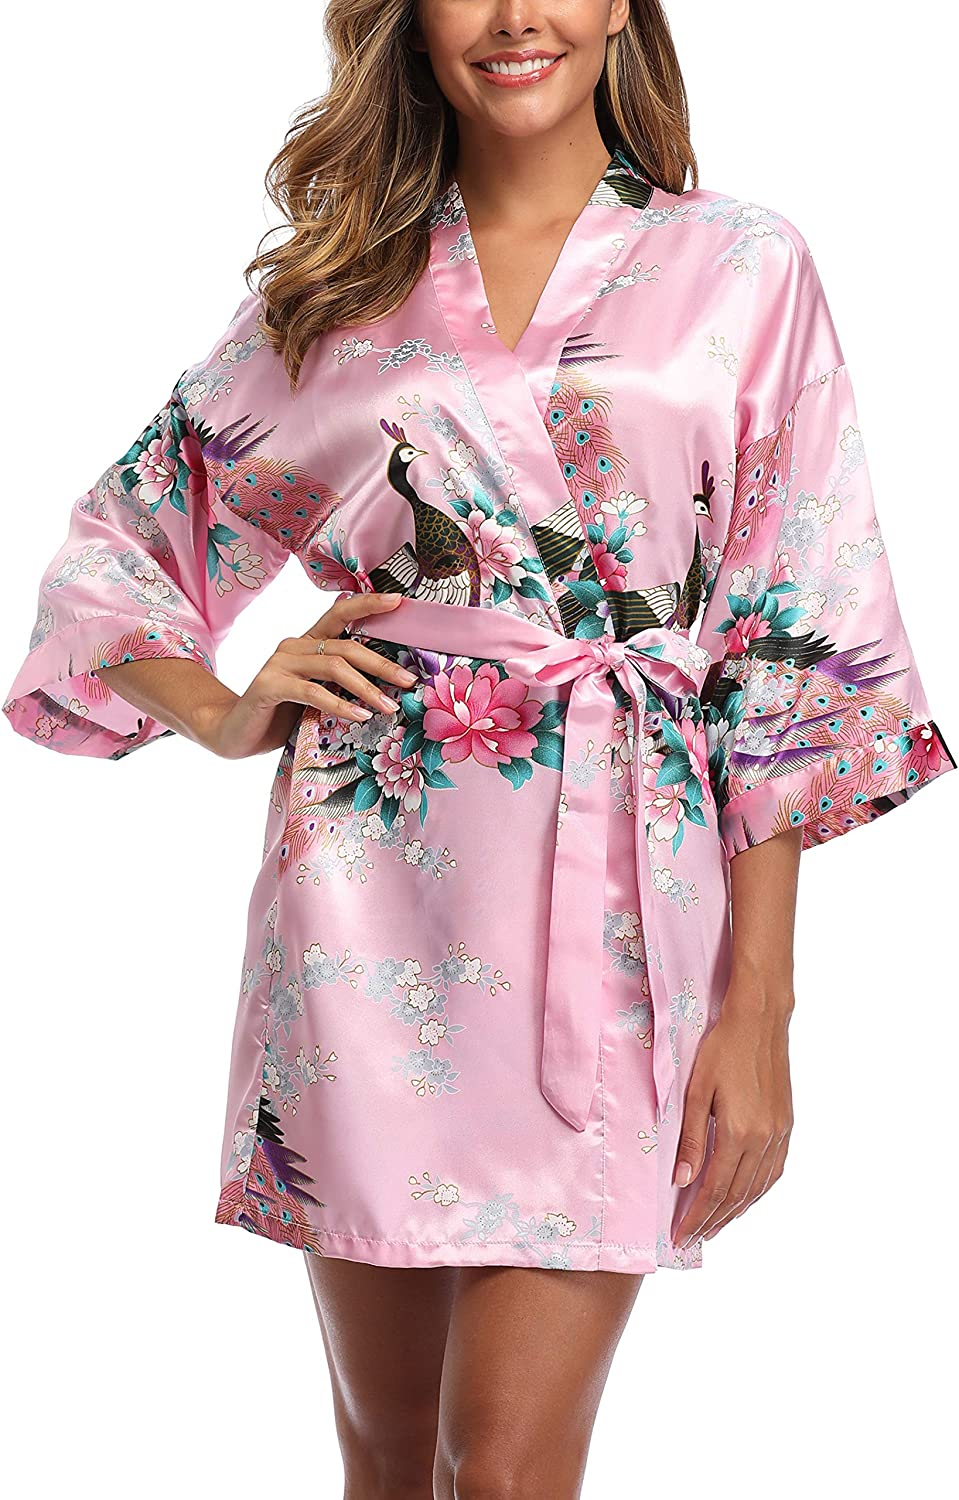 Women's Ranking integrated 1st place Satin Bridesmaid Kimono Robes Short and Peacock Popular B Floral